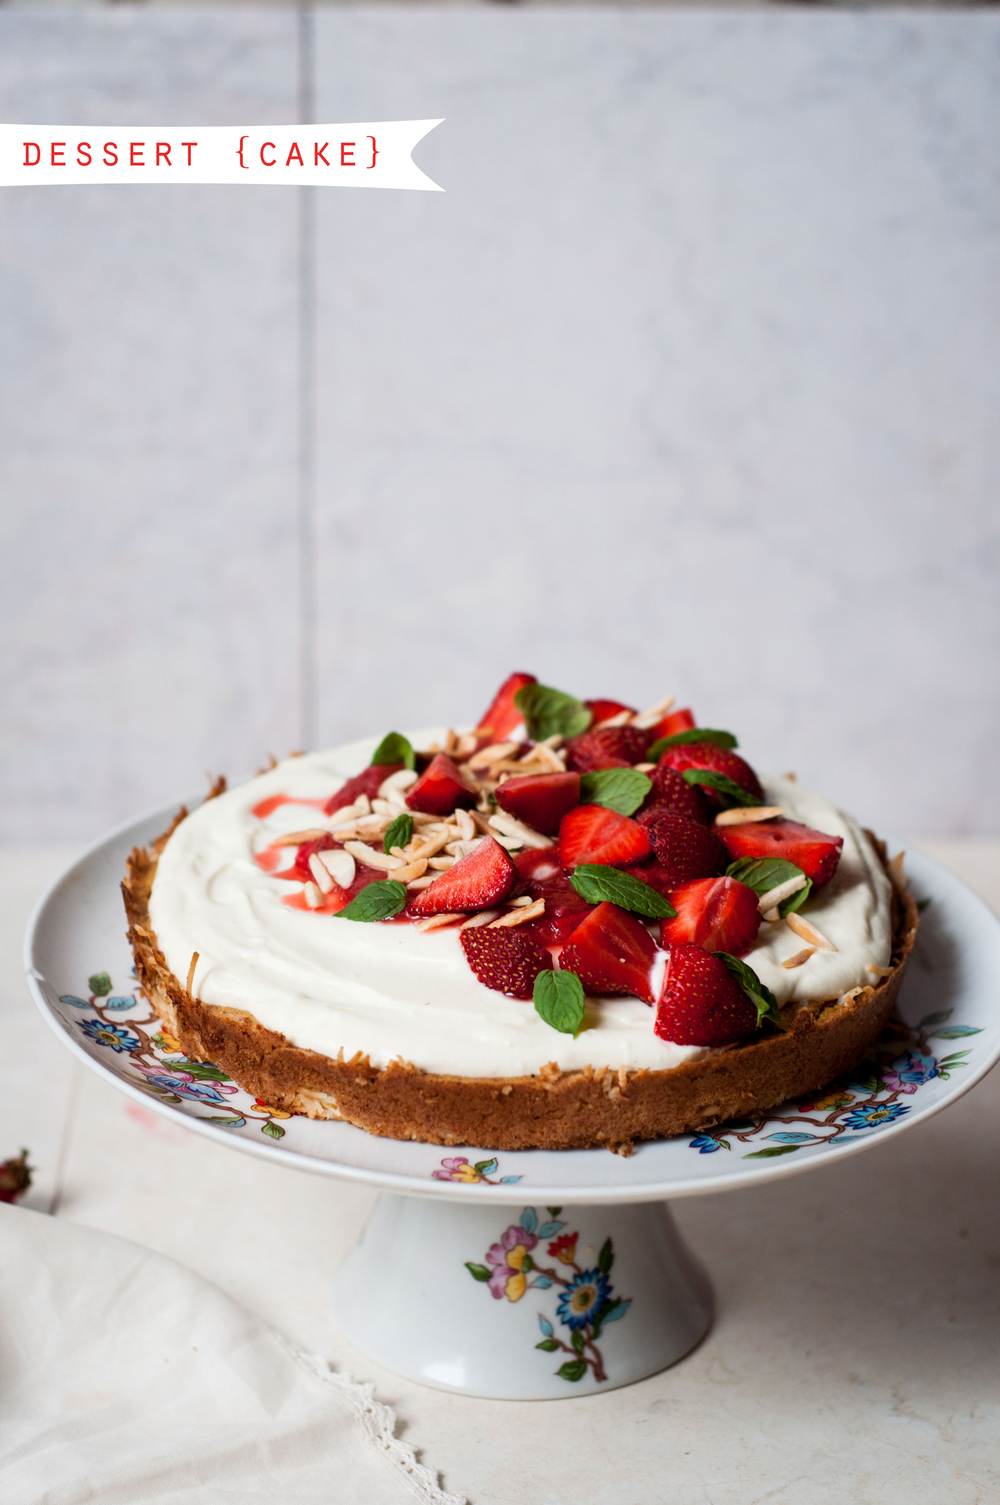 RHUBARB STRAWBERRY CAKE WITH OAT-ALMOND-COCONUT SPONGE